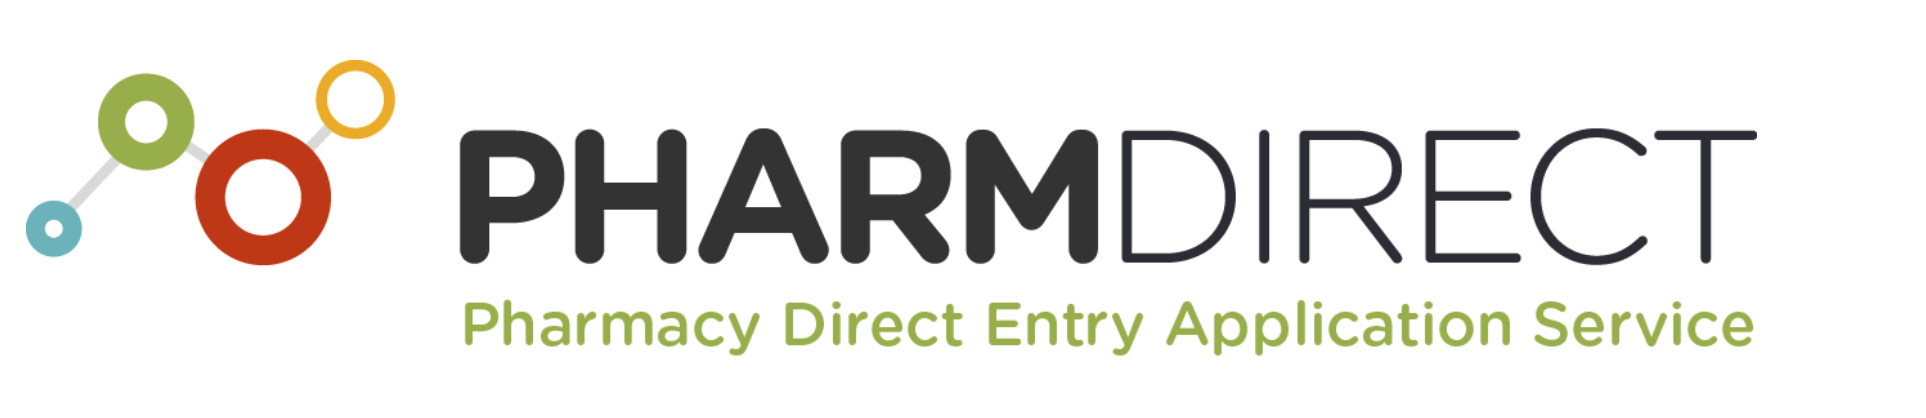 pharmacist schools and colleges direct entry application service PHARMDIRECT